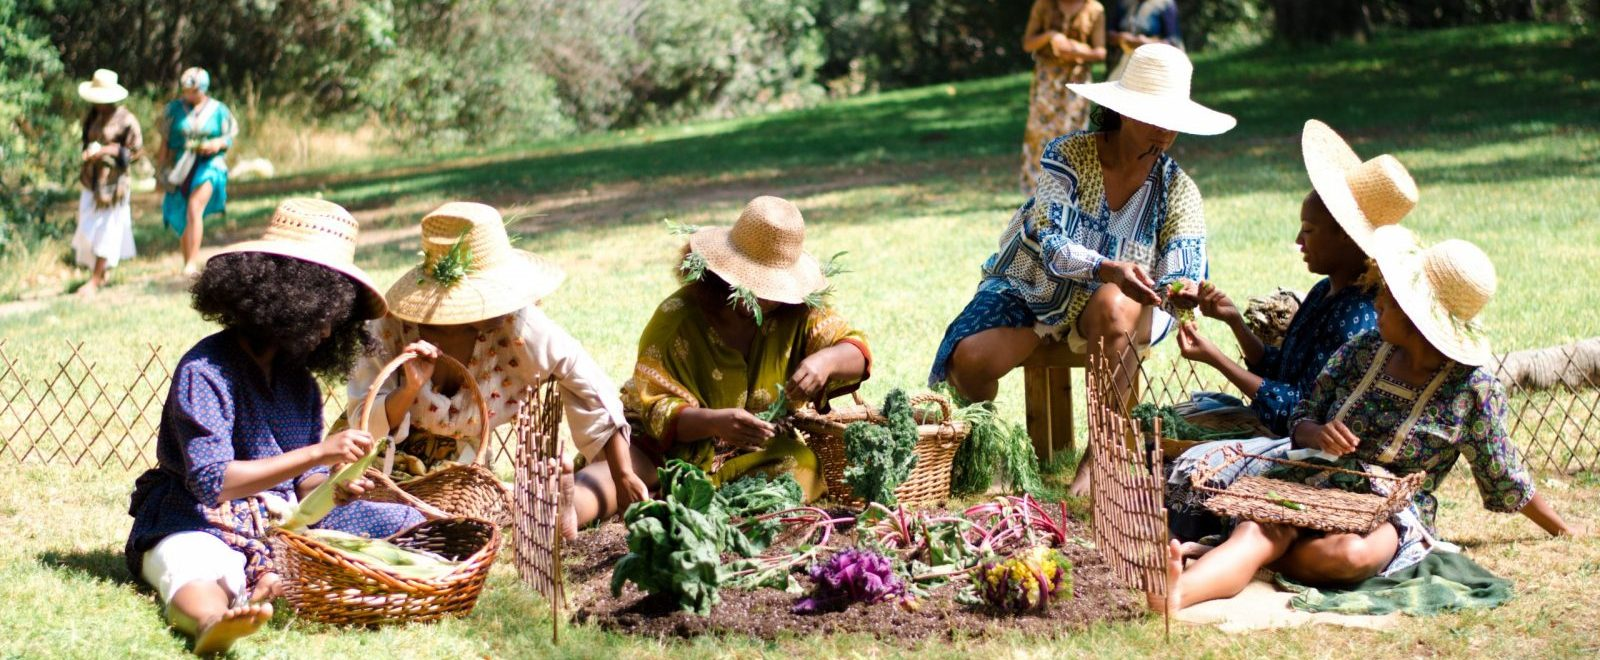 In the foreground, five dark brown skin womyn of Nigerian/African descent, all wearing light woven sun hats with wide brims, sit in grass around a small garden, picking leaves and talking to one another. From left to right: The woman furthest to the left has curly dark brown hair, is wearing purple top with red polka dots and white pants, one leg in front of her and bracketing her basket, looking down at the large light green leaf that she's holding. Next to her is a woman wearing a light top with flower/tassels embroidered on the front, yellow patterned pants, one hand holding her basket and the other reaching across the woman to her left leg into the dirt. In the middle is a woman with green leaves sticking out from the brim of her hat, wearing light green patterned dress with orange trim, looking down at the light green leaf she's holding in both hands. Her arm rests above a basket filled with green stalks poking out of the left side. Next to her is a woman sitting on a stool, black stripes on her chin, wearing a blue yellow and grey patterned loose top and white shorts, holding a plant and showing it to the women on her right. The two women furthest to the right are younger. The one sitting next to the stool is also holding the plant, hat tipped back, looking down and smiling, wearing a dark blue patterned dress, and in her lap is a basket of green plants. The woman furthest to the right is wearing a multicolored dress and in her lap is a basket with only one plant; she has light brown curly hair, one leg tucked underneath the other which is pressed against the garden fence. The garden is full of purple lettuce, red and green chard, yellow and green lettuce. In the background two pairs of dark brown skin women of African/Nigerian descent stand and stroll through the grass. Dark green trees with flowers fill the background.